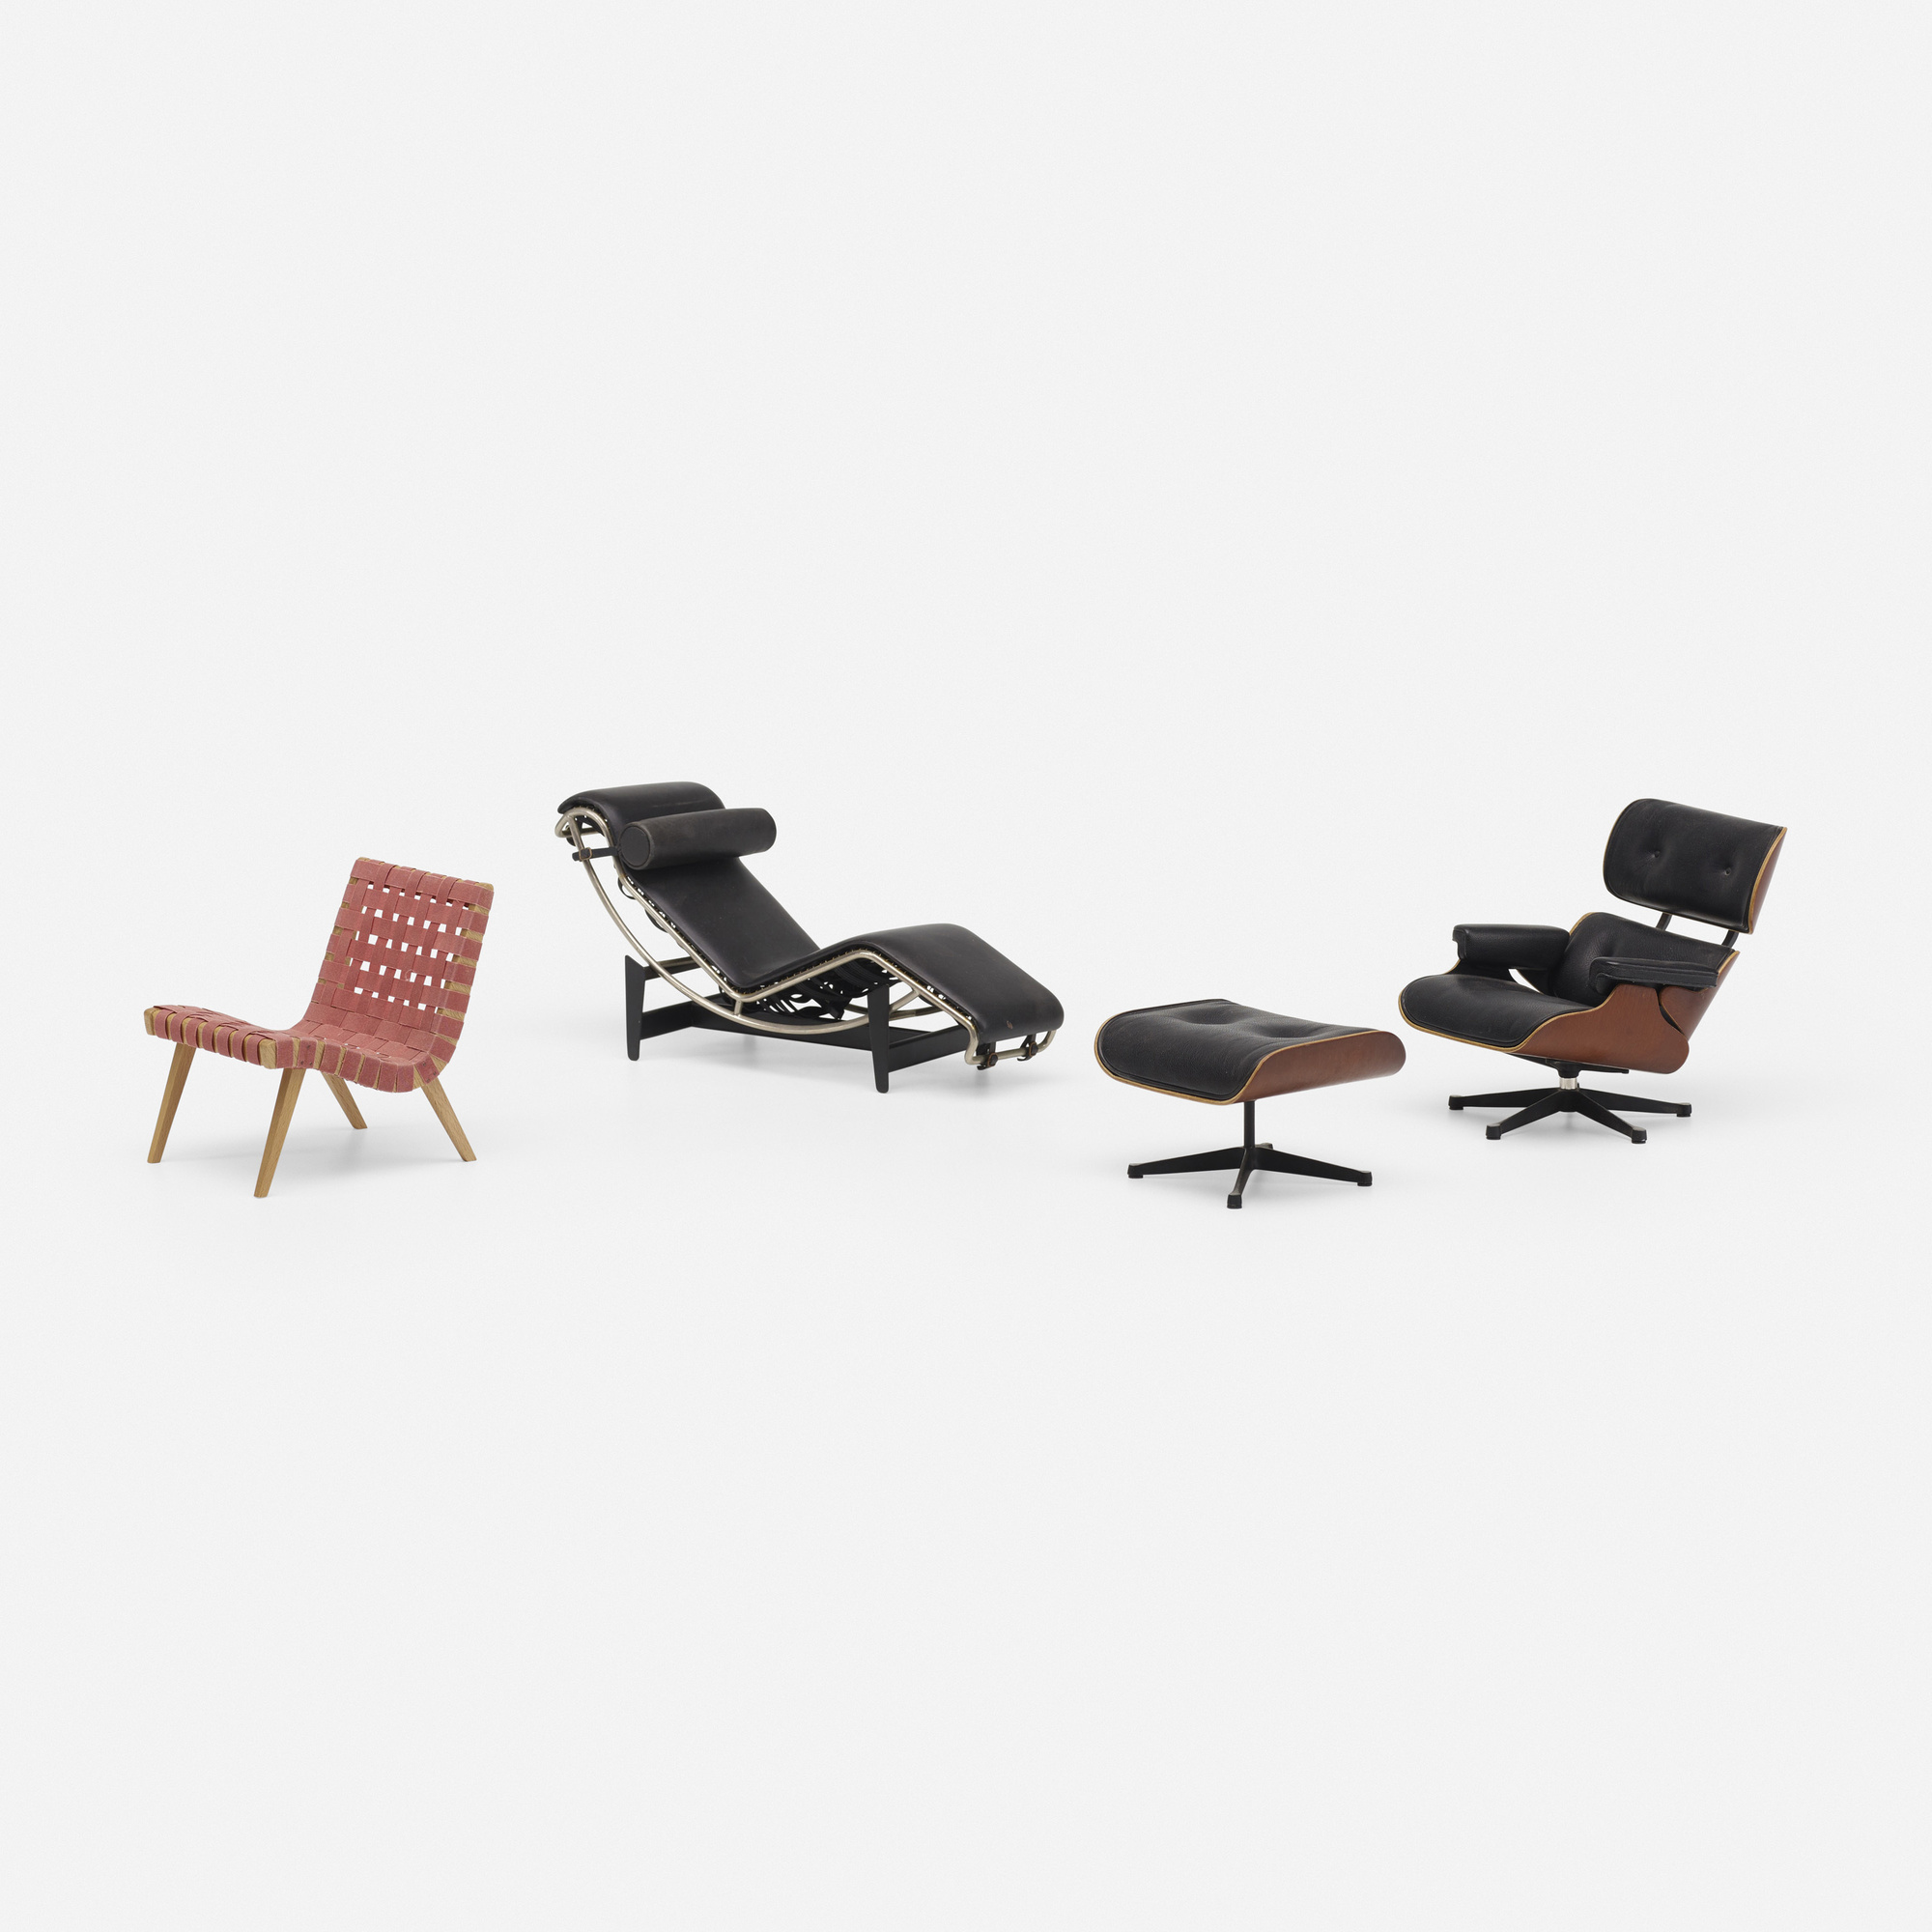 776 vitra collection of three miniature chairs. Black Bedroom Furniture Sets. Home Design Ideas